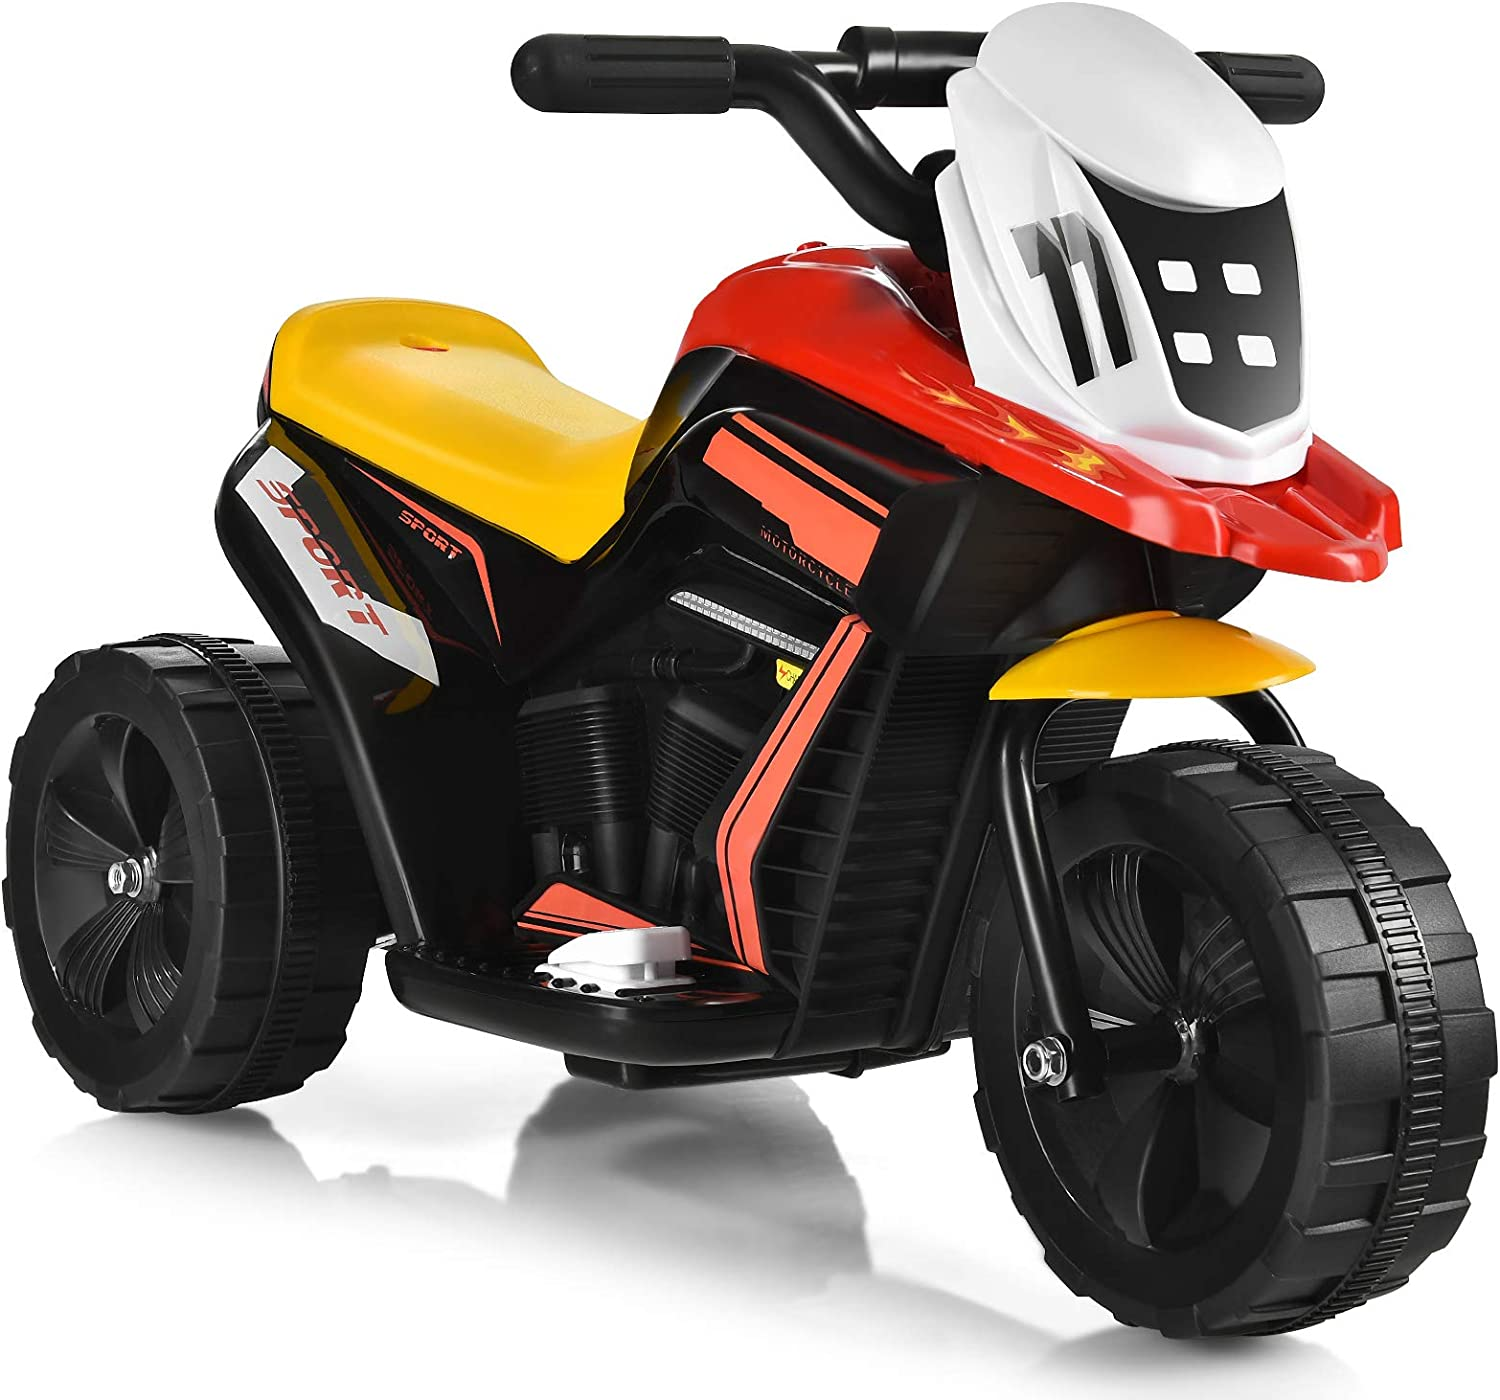 Costzon Kids Motorcycle Battery Powered 3 El Max 68% OFF Toy Ride Louisville-Jefferson County Mall On Wheel